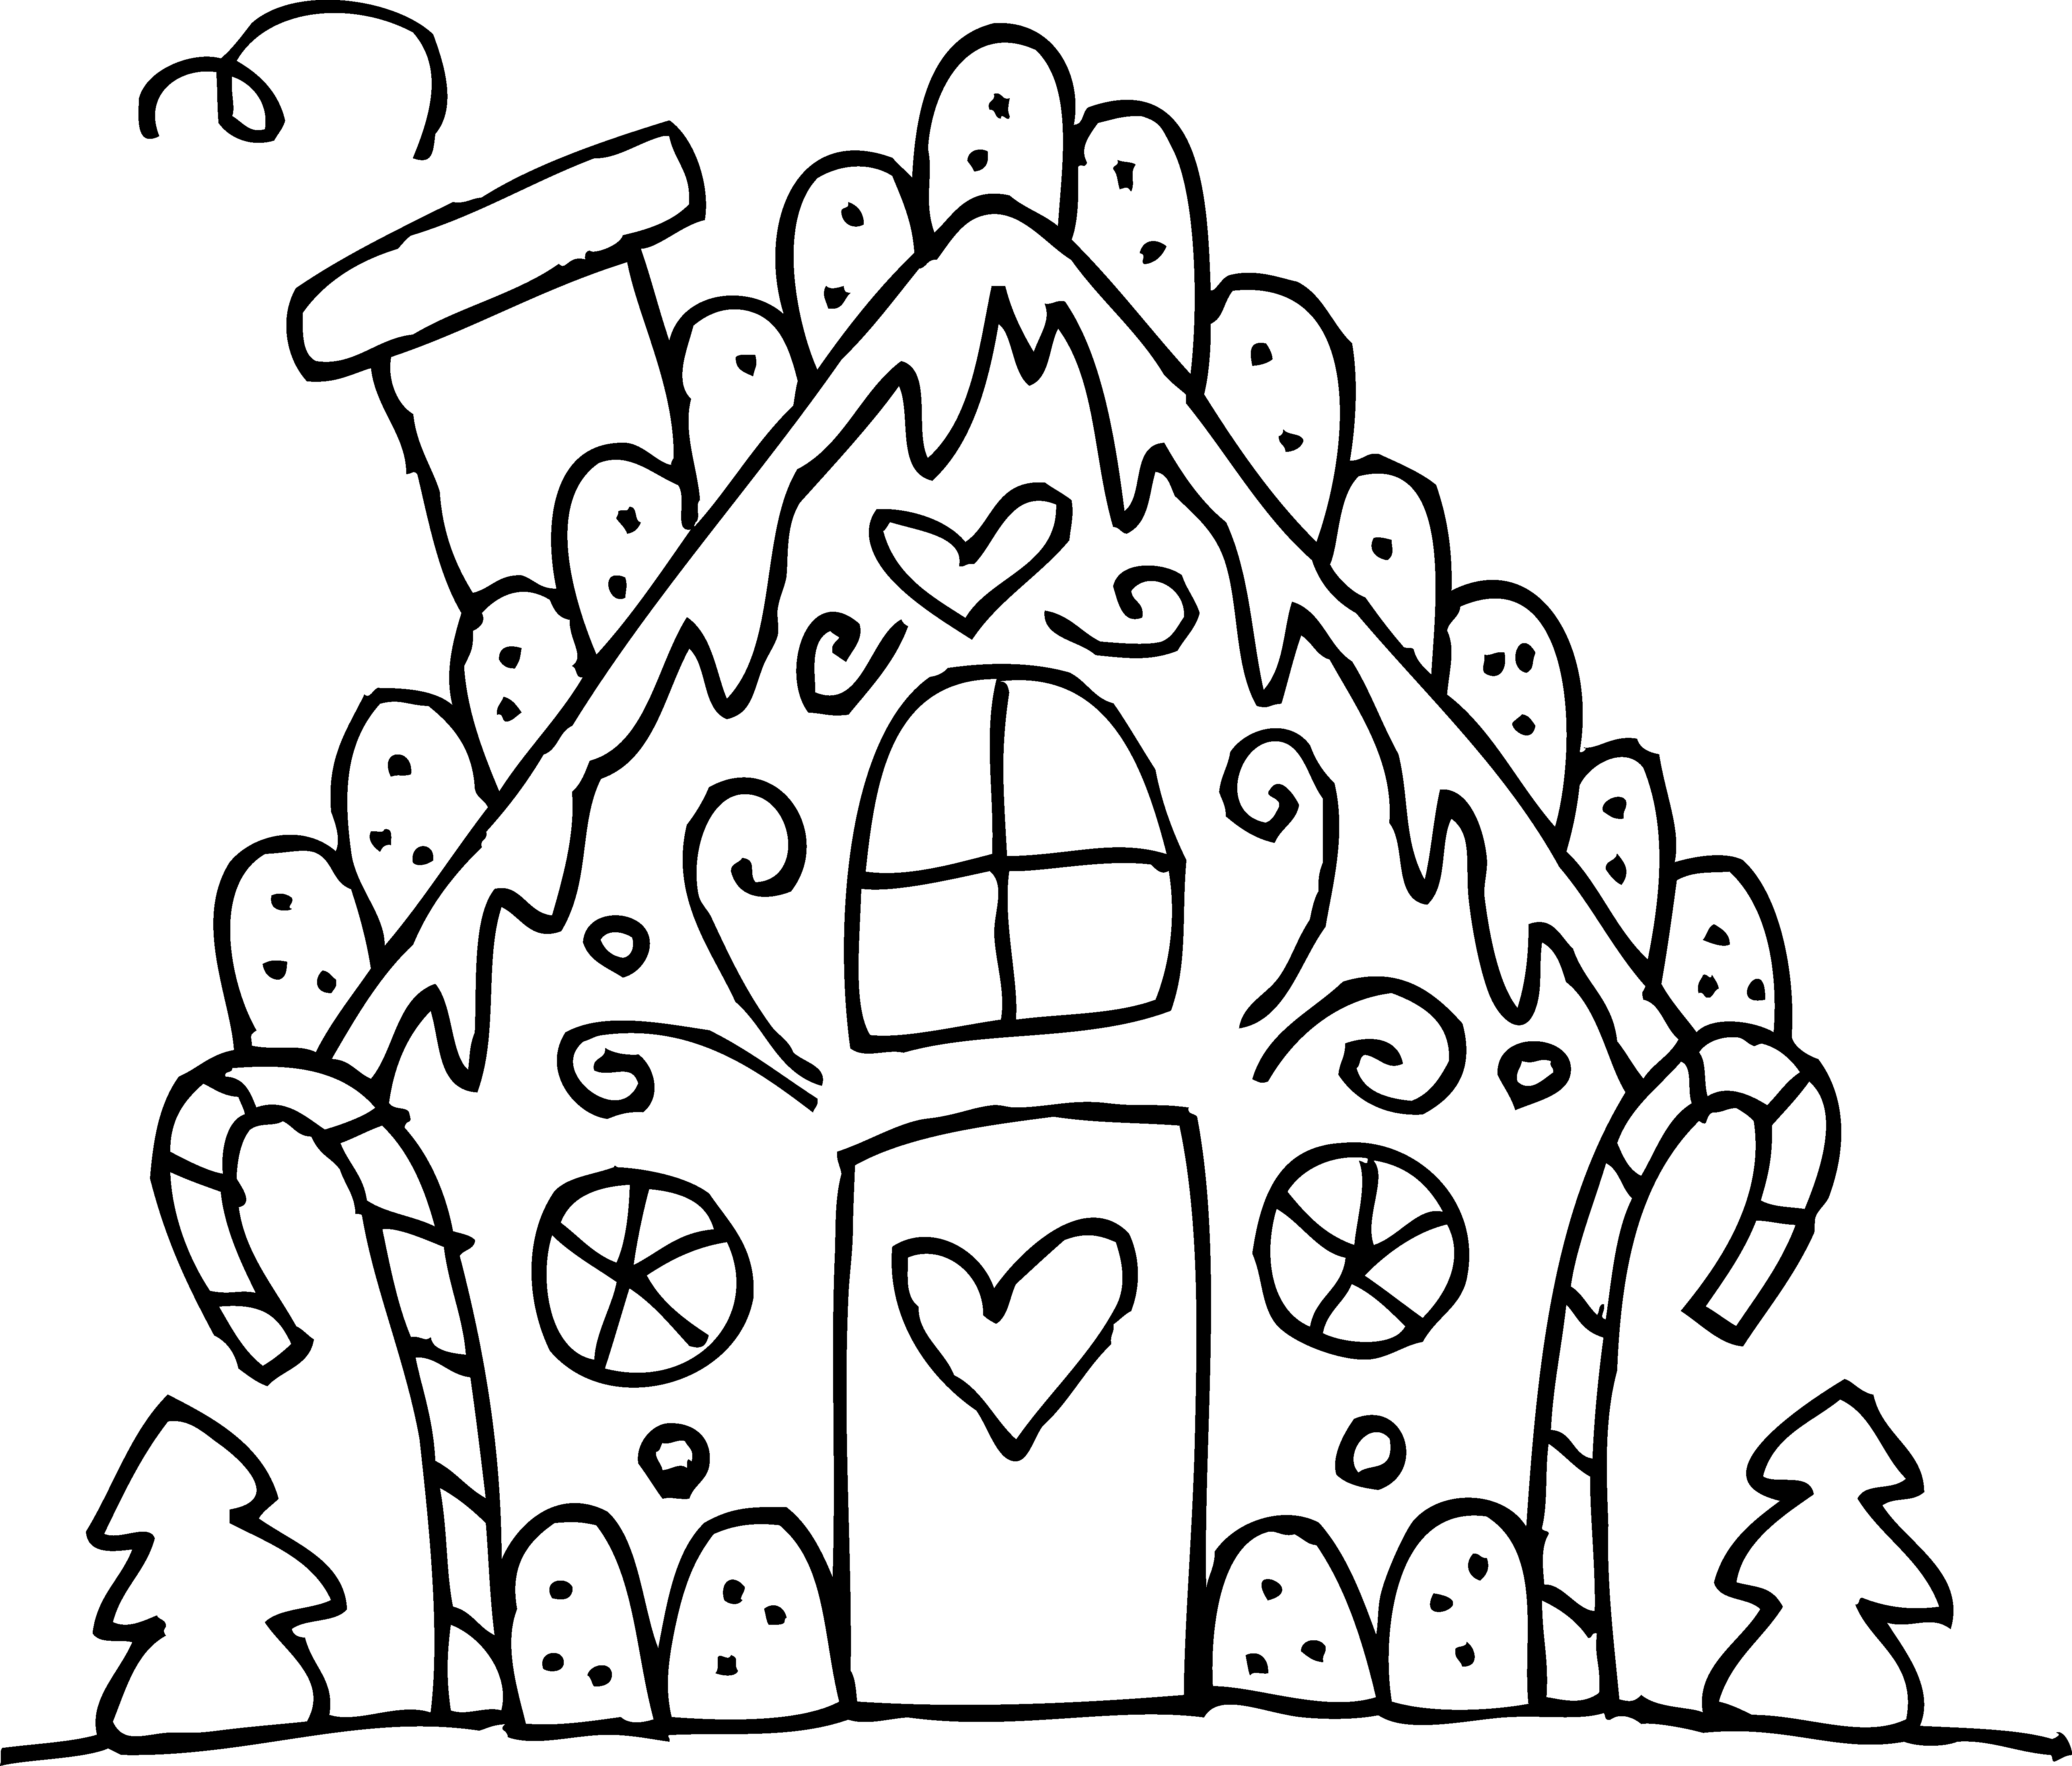 Free clipart gingerbread house and men - ClipartFox